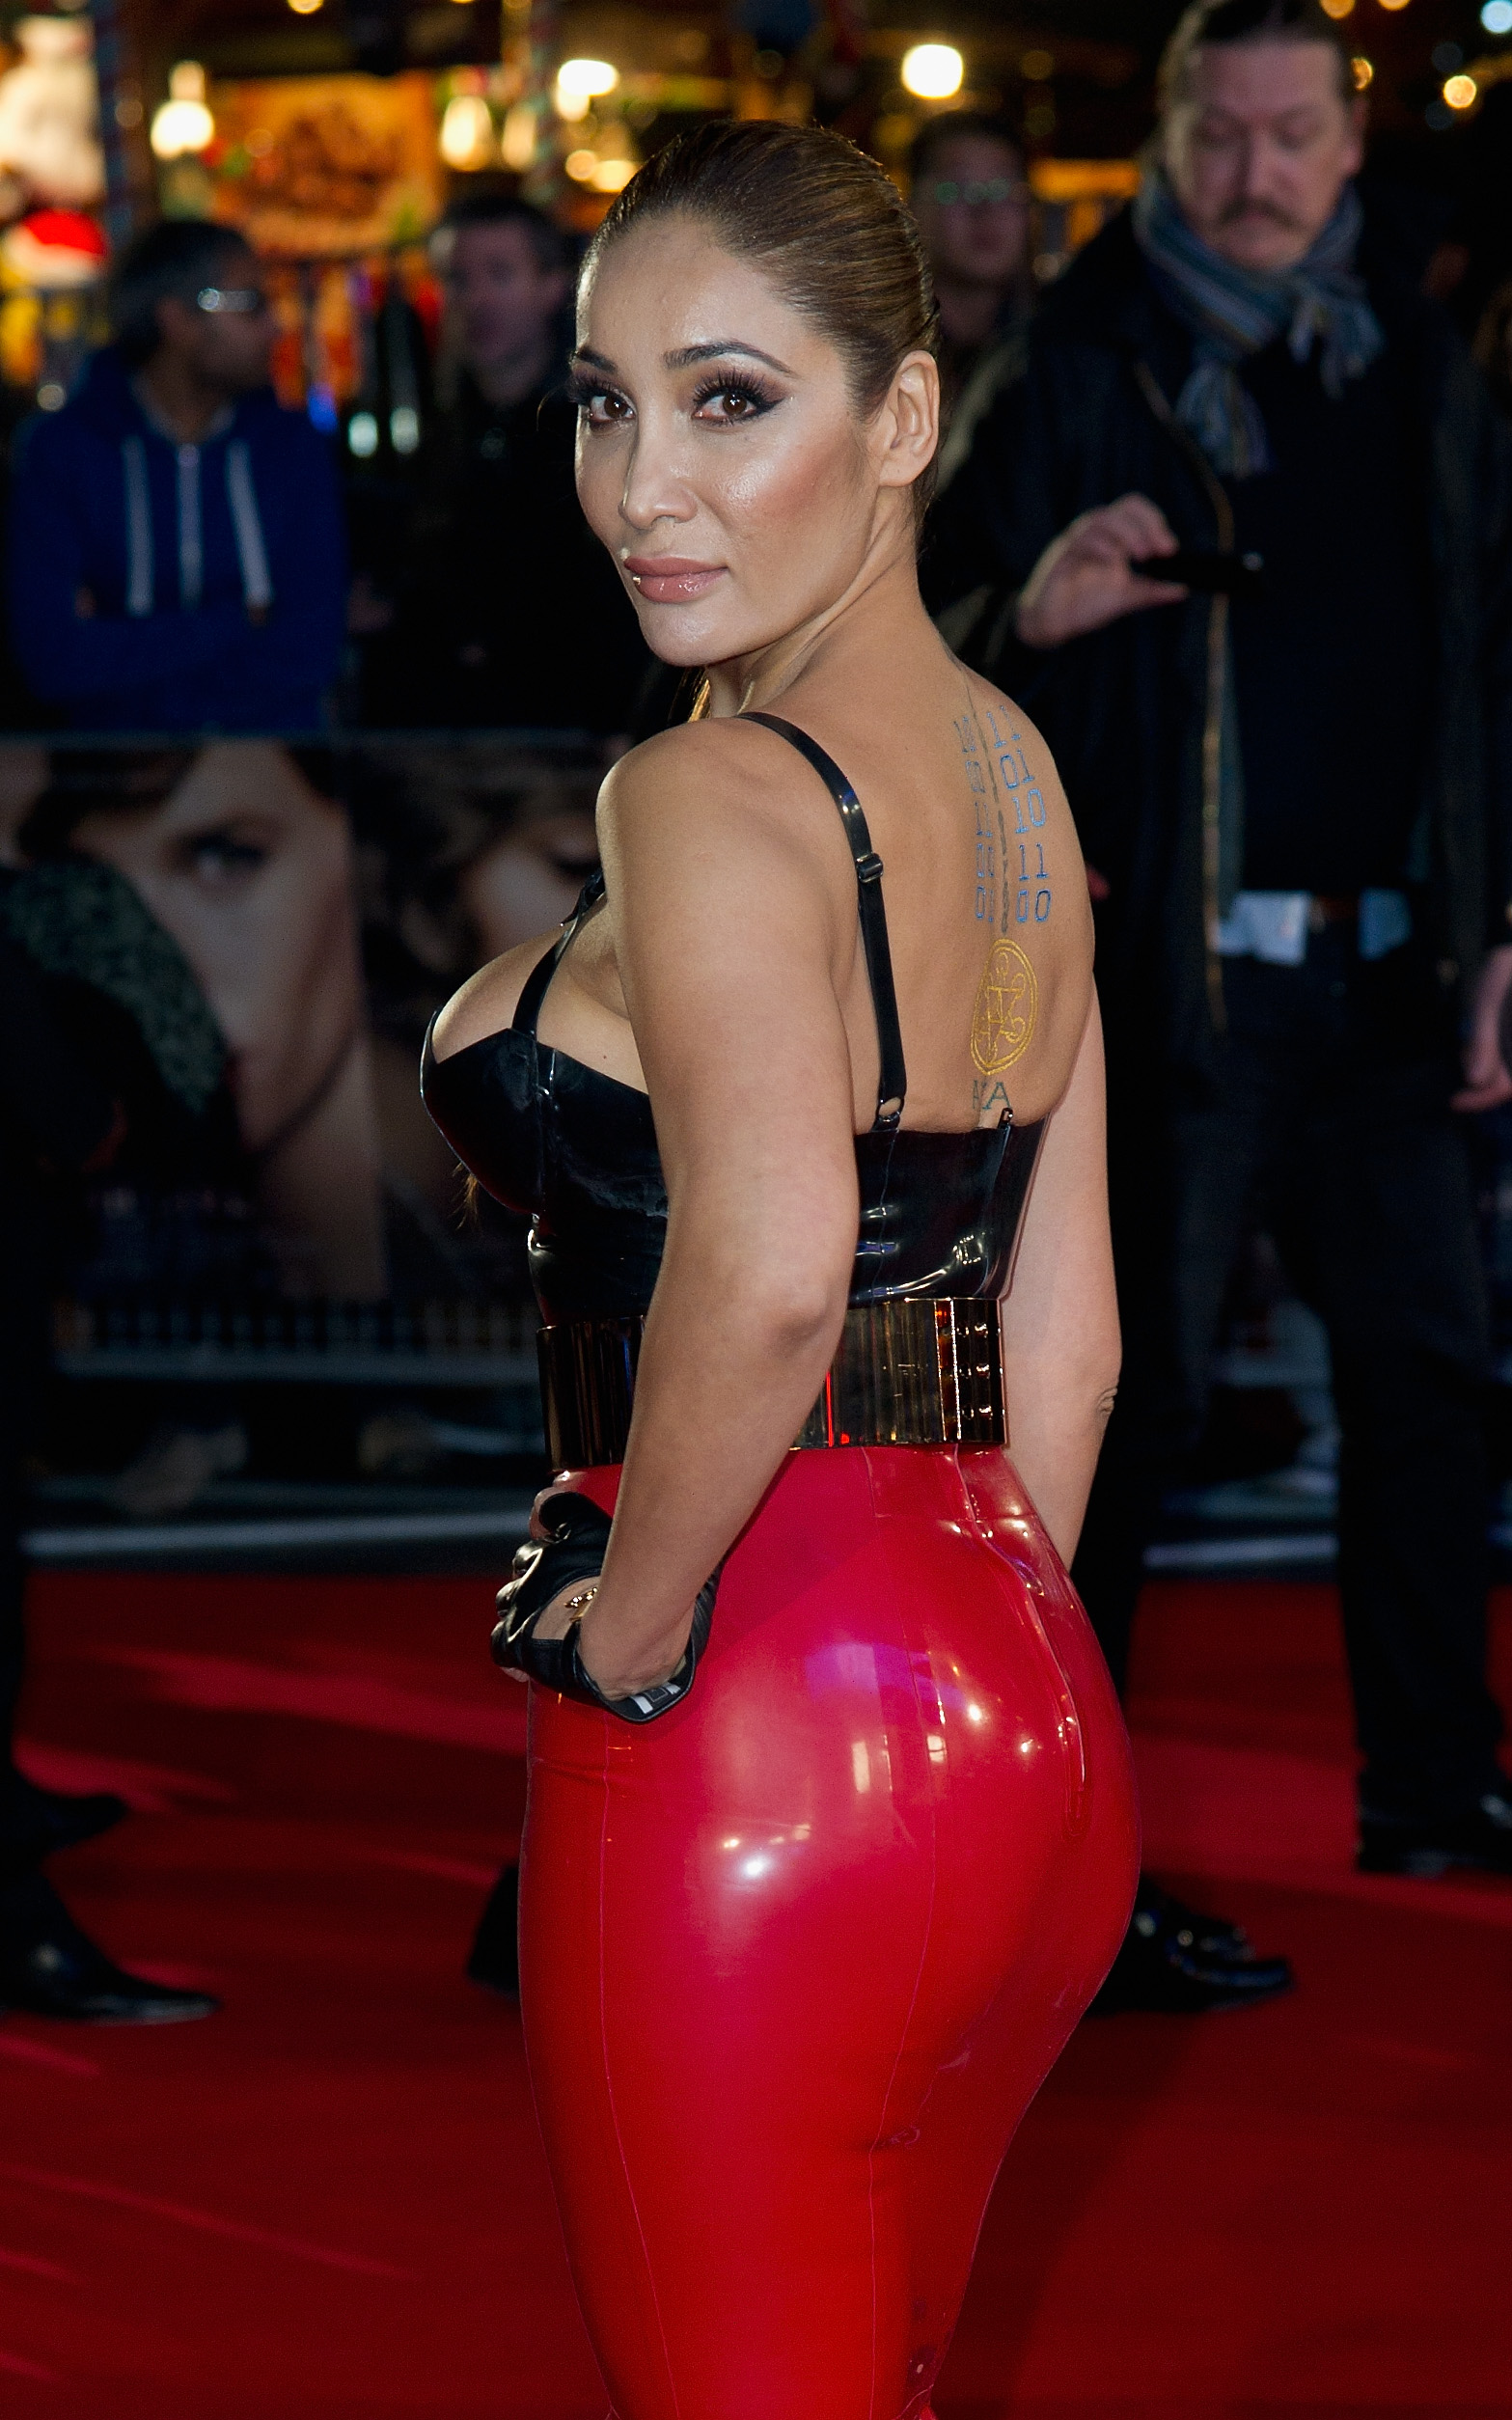 British Model And Actress Ditches Breast Implants To Become Nun GettyImages 500477626